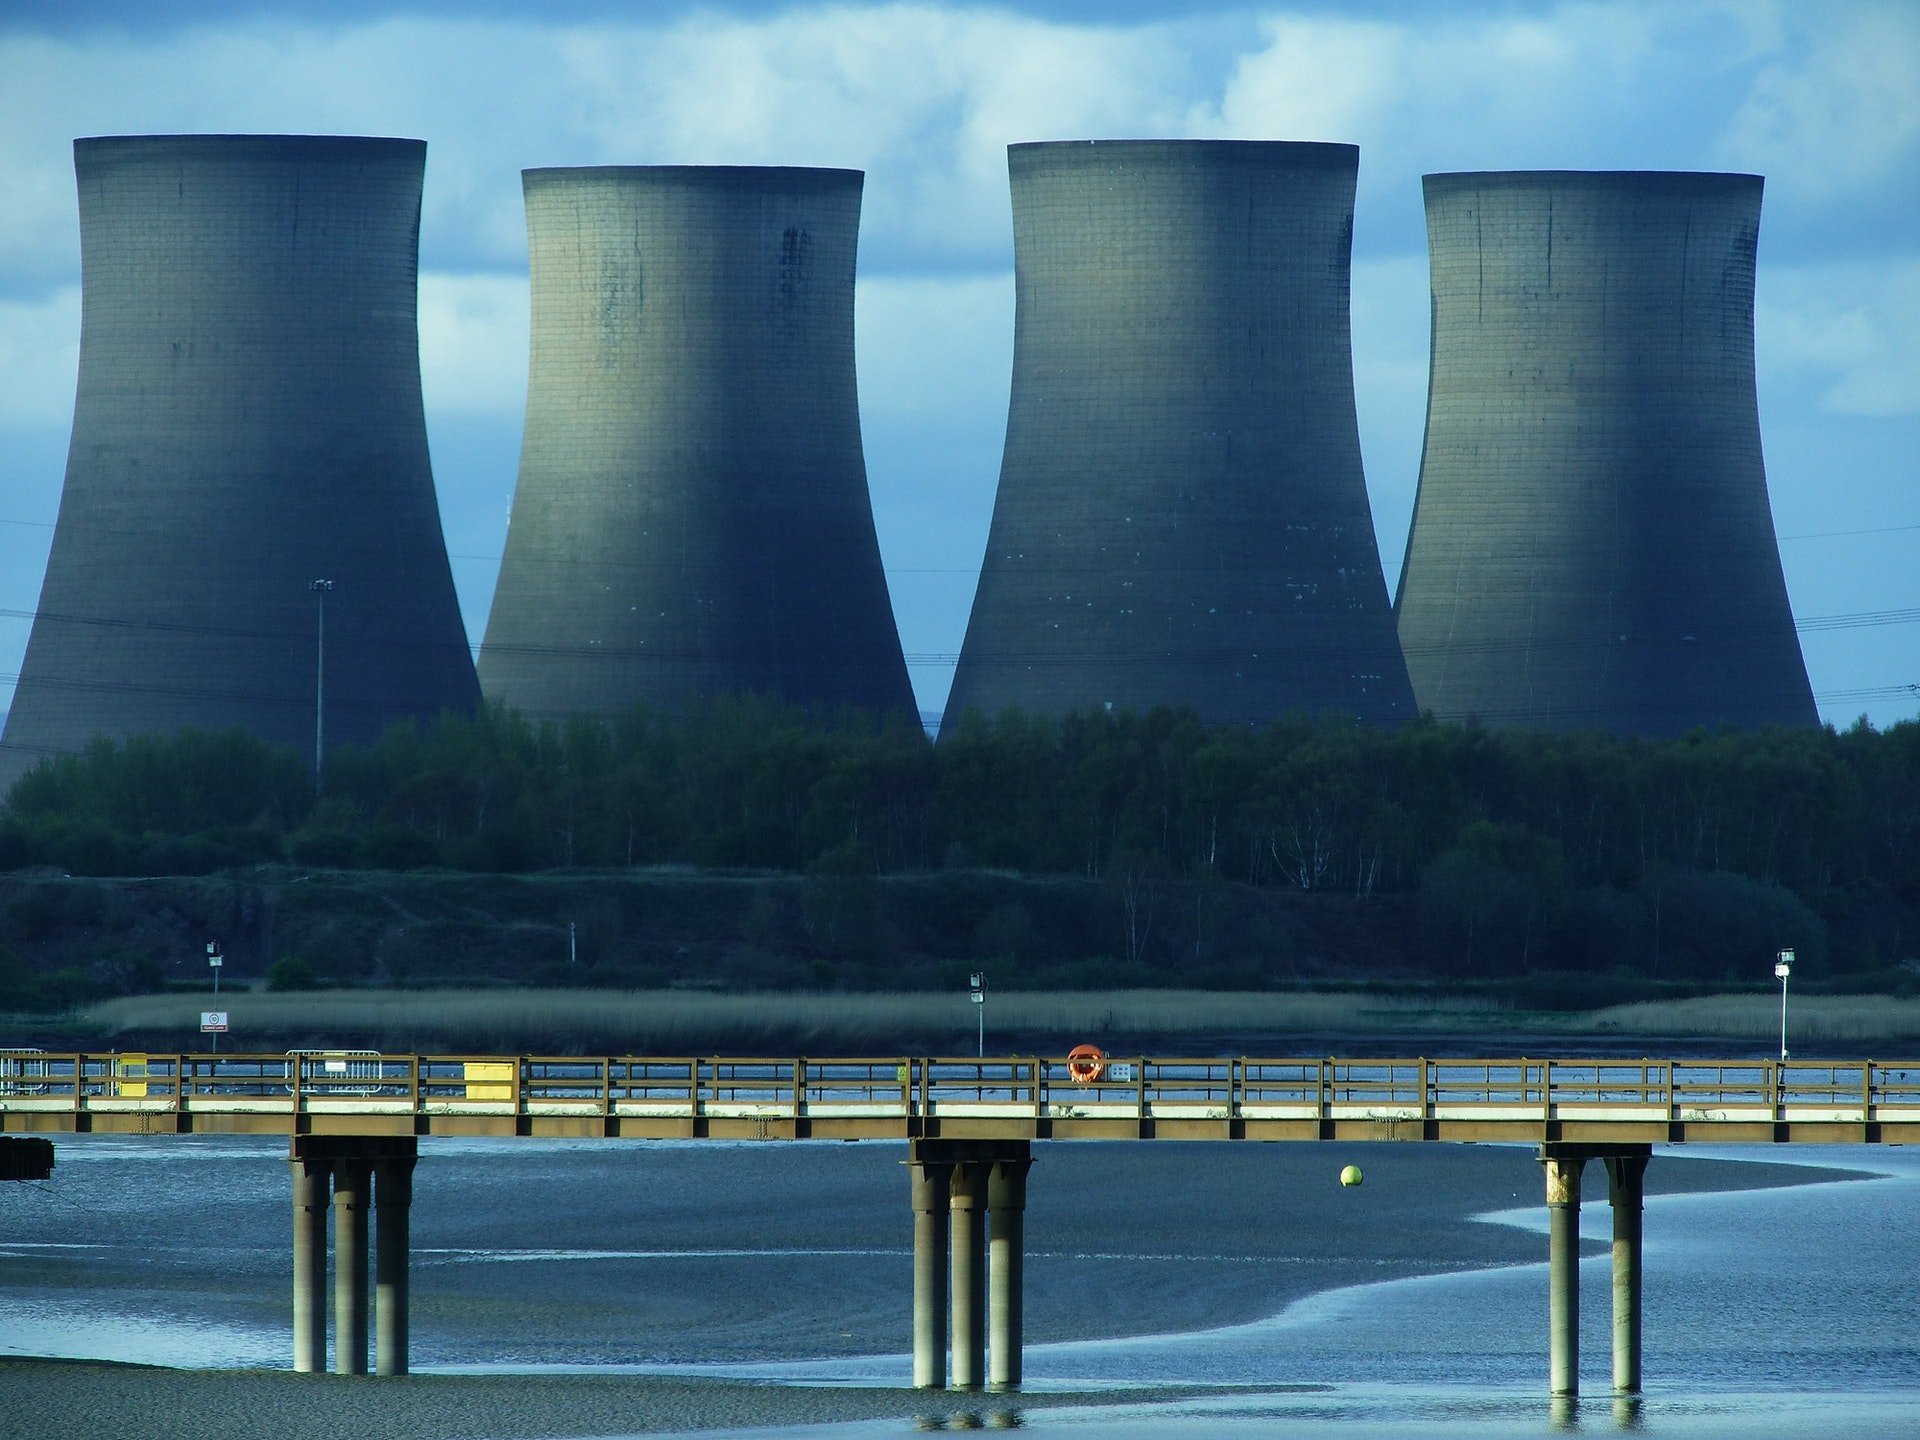 Uranium Market to be Re-Energized by Infrastructure Package, Emerging Nuclear Technologies